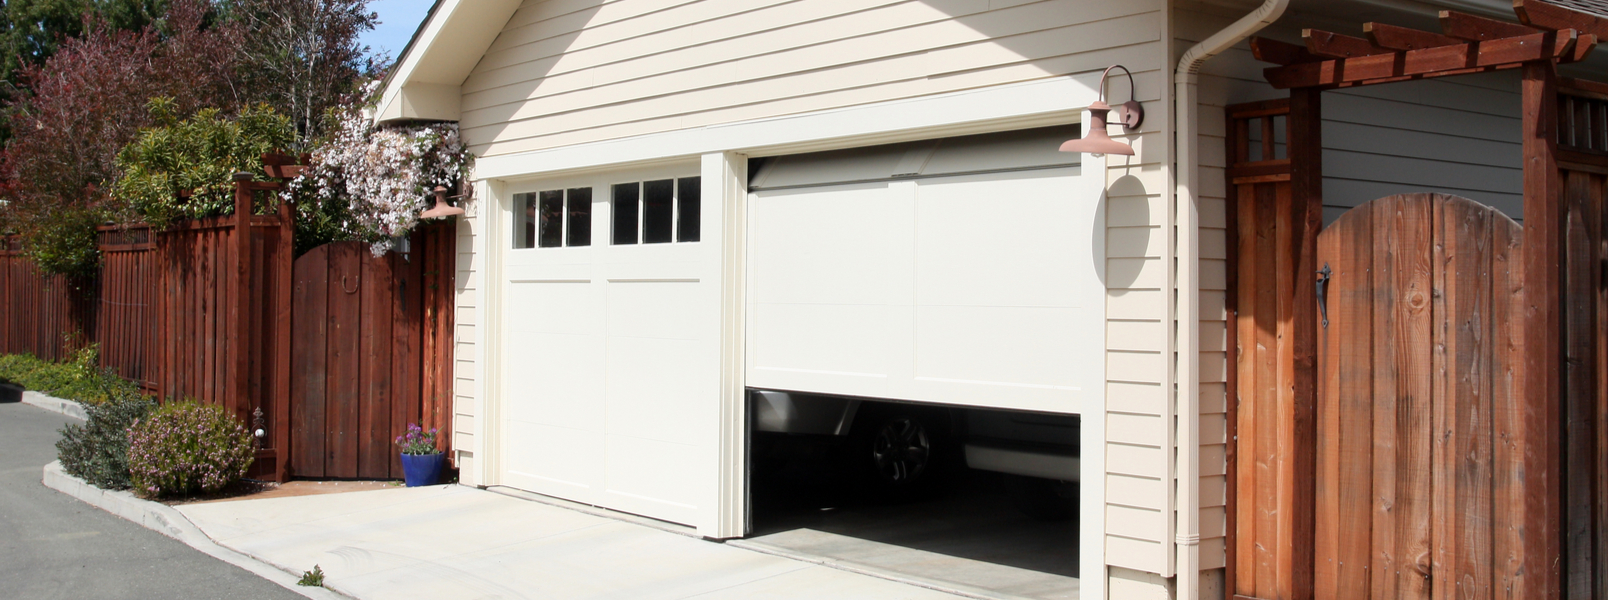 How Much Does It Cost to Add a Garage to Your Home in 2021?